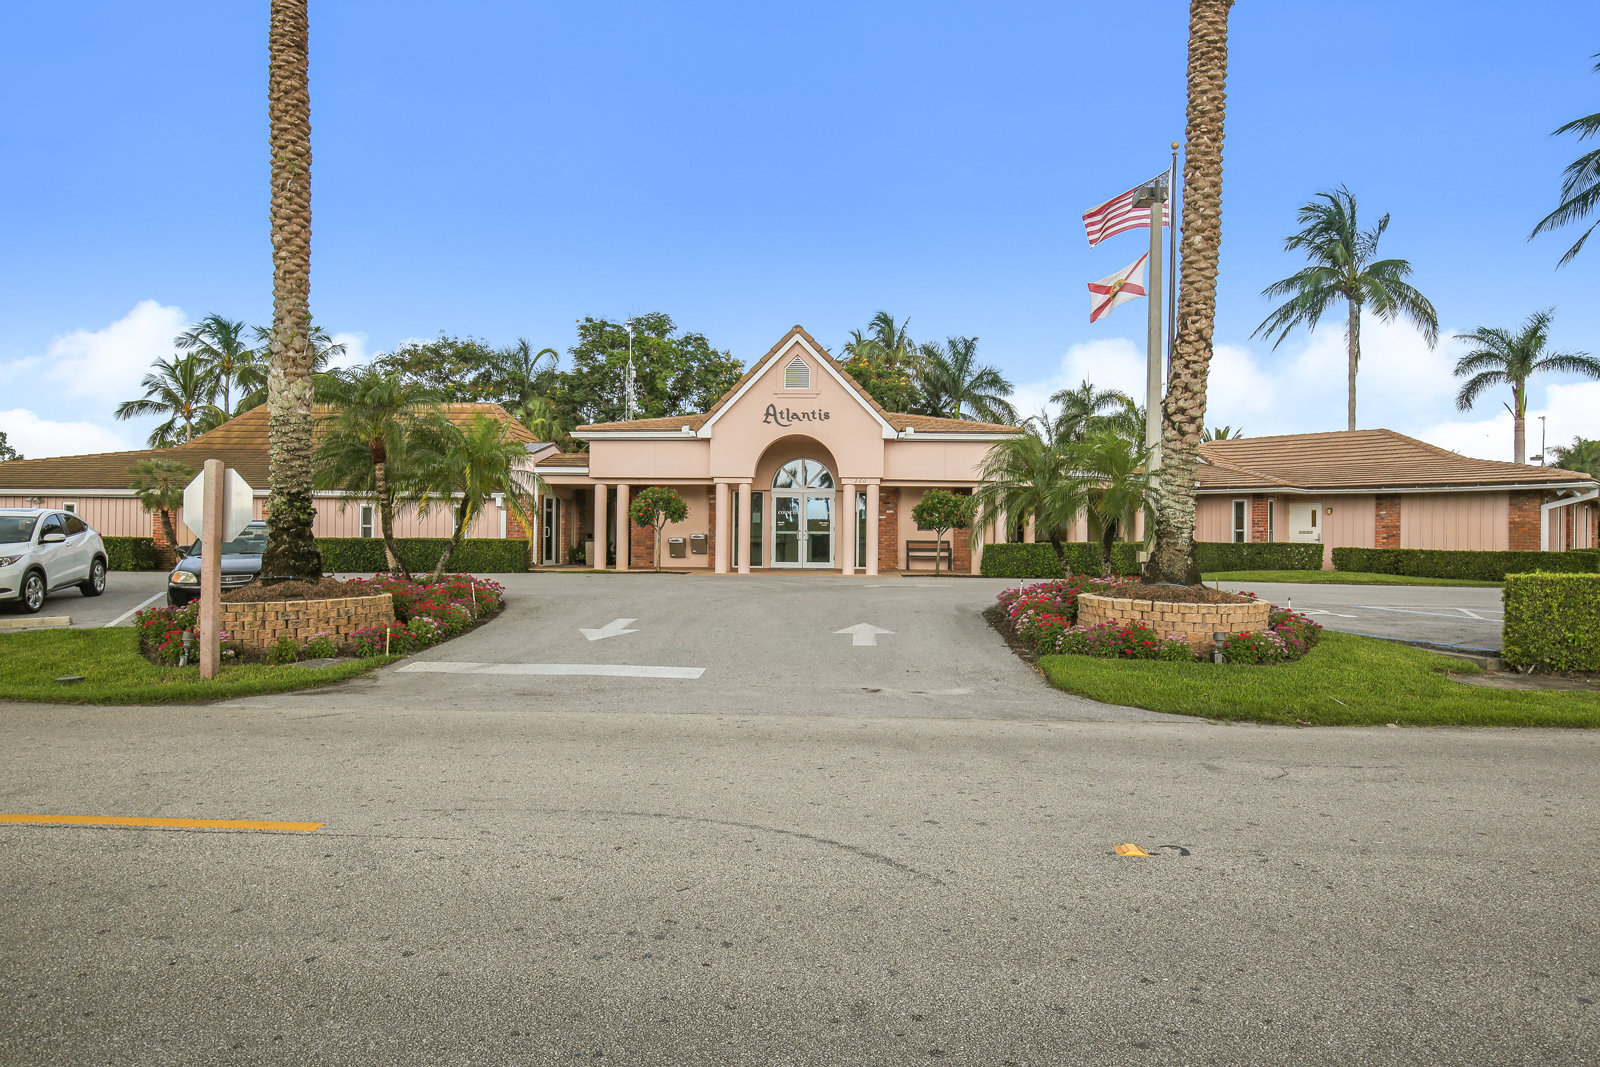 Atlantis Boca Raton Homes for Sale